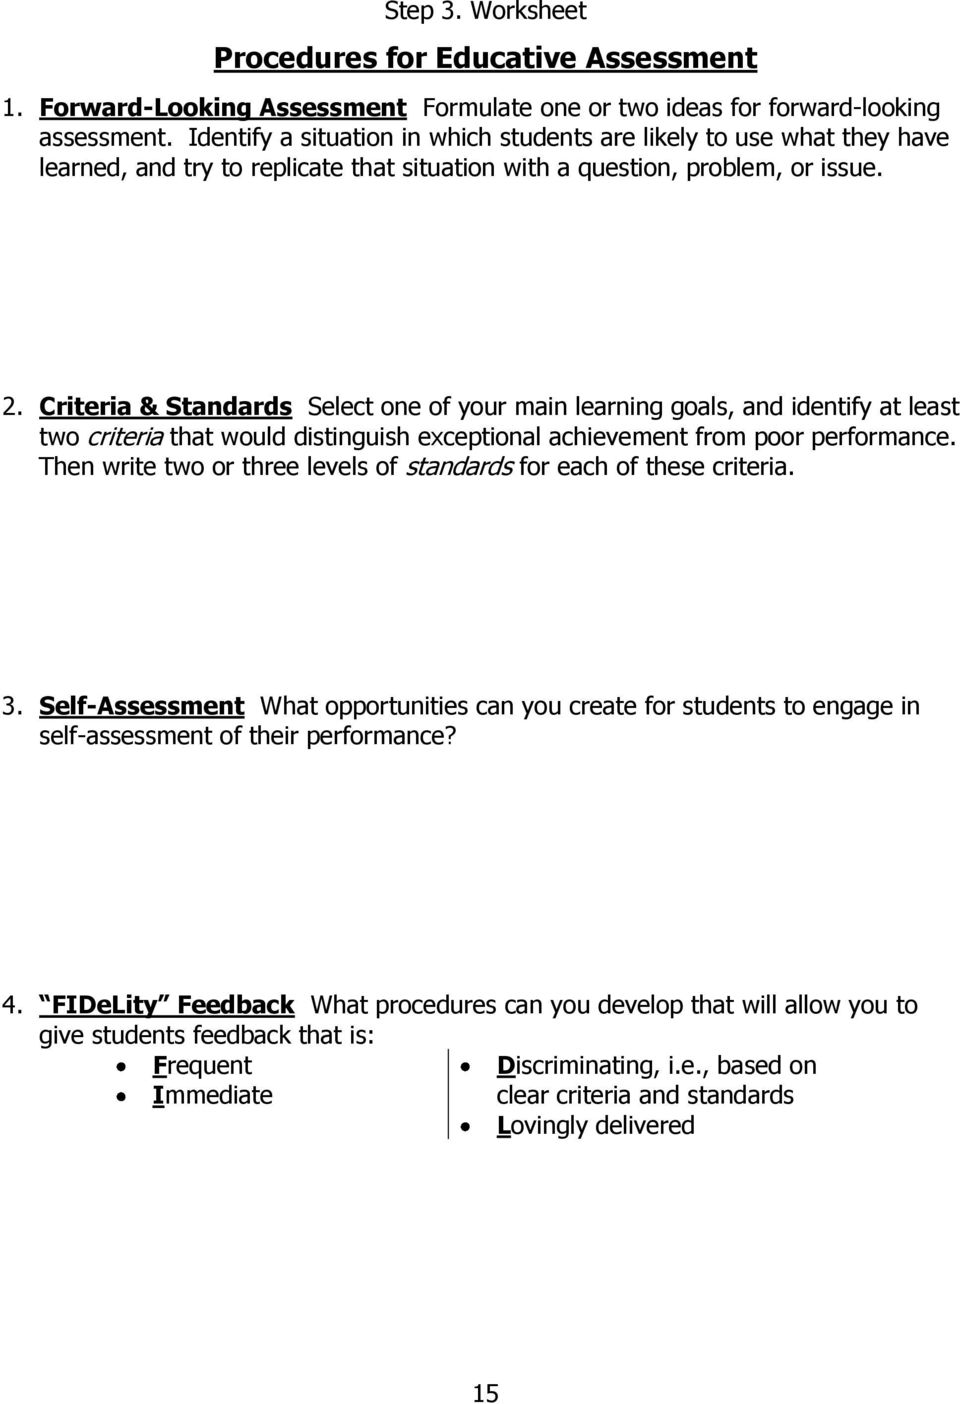 Criteria & Standards Select one of your main learning goals, and identify at least two criteria that would distinguish exceptional achievement from poor performance.